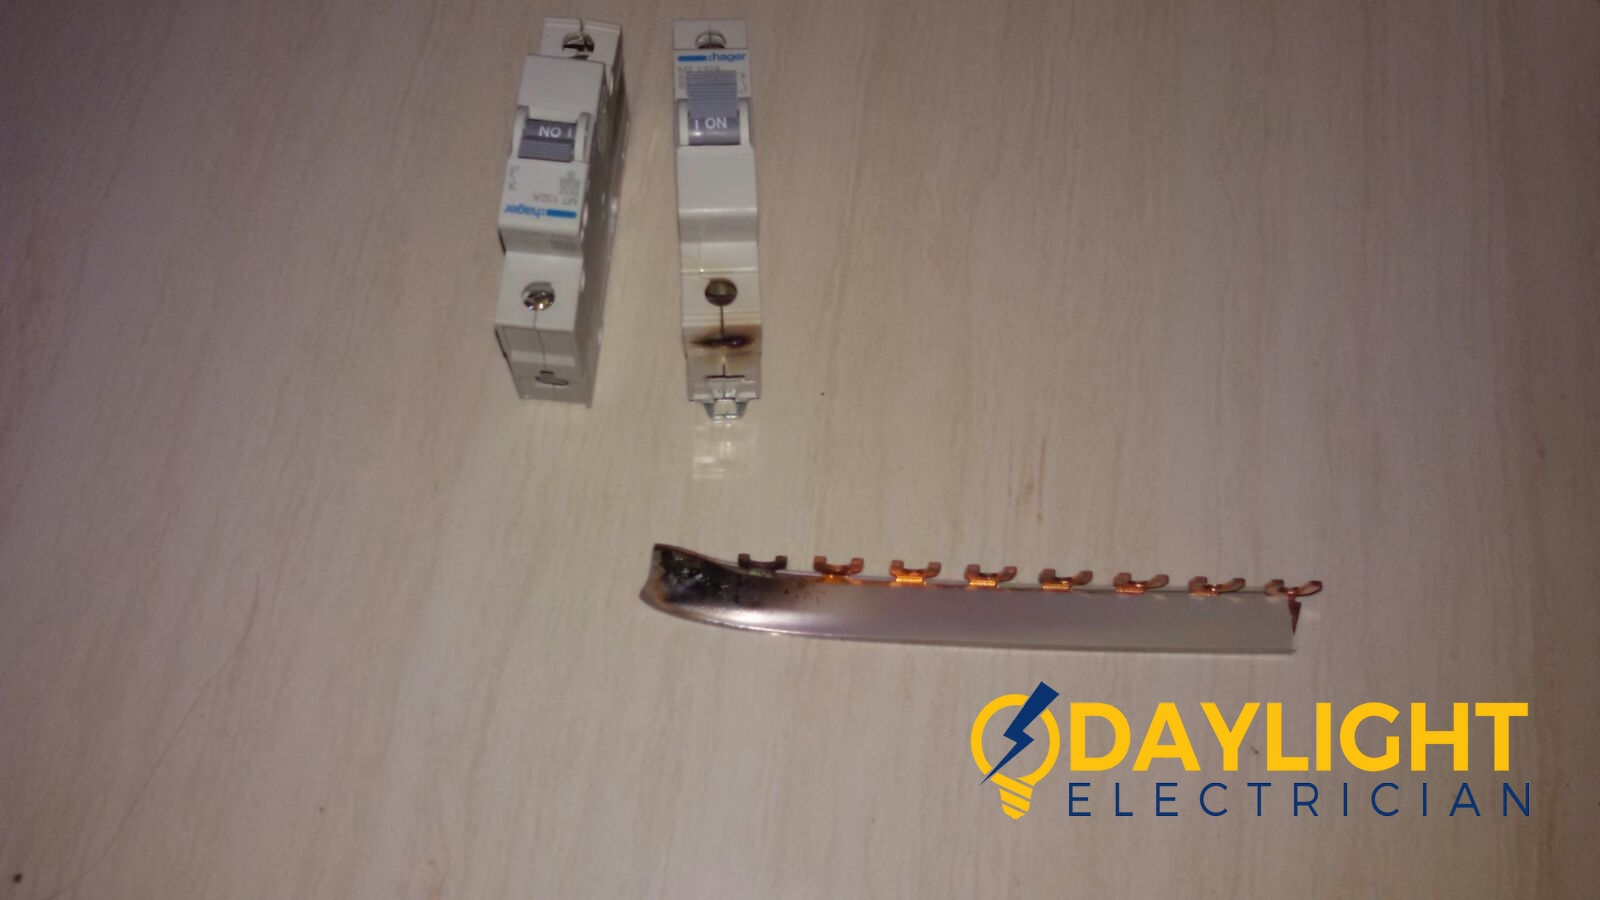 db-box-distribution-board-Change-mcb-link-bar-electrician-singapore-HDB-bishan-2_wm